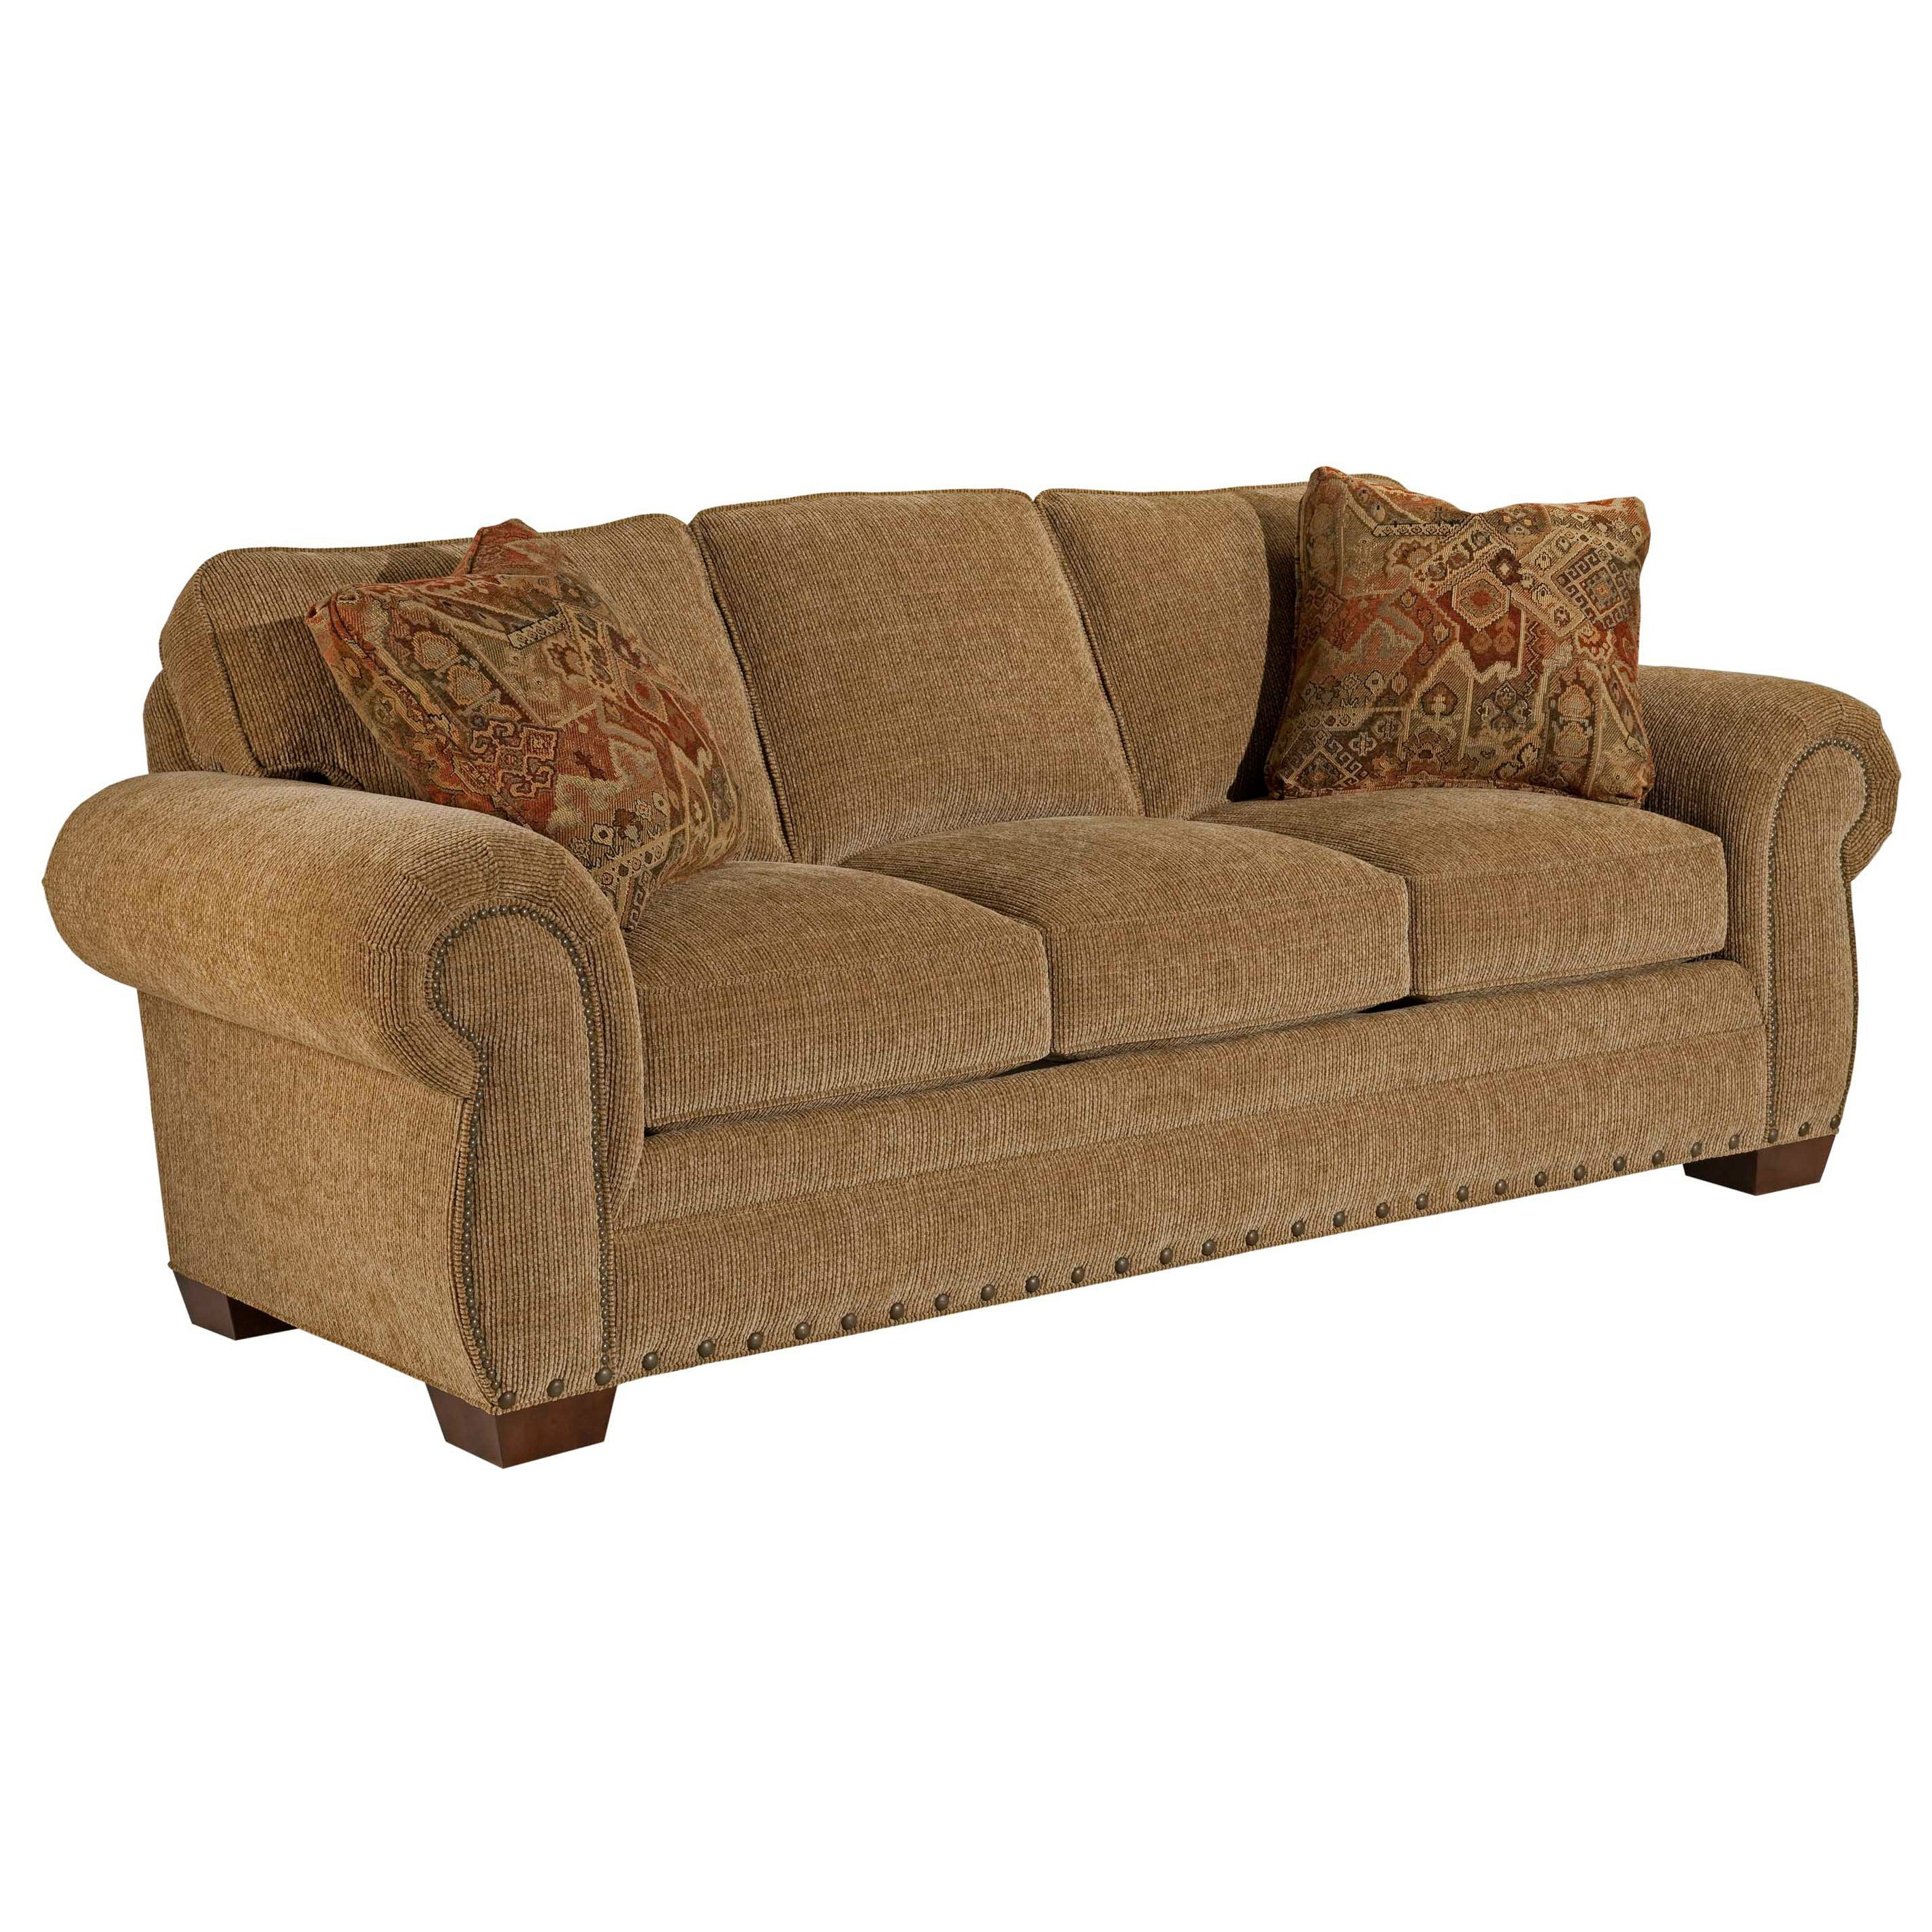 Living Room Furniture Free Shipping Broyhill Casey Bark Sofa And Accent Pillows Free Shipping Today